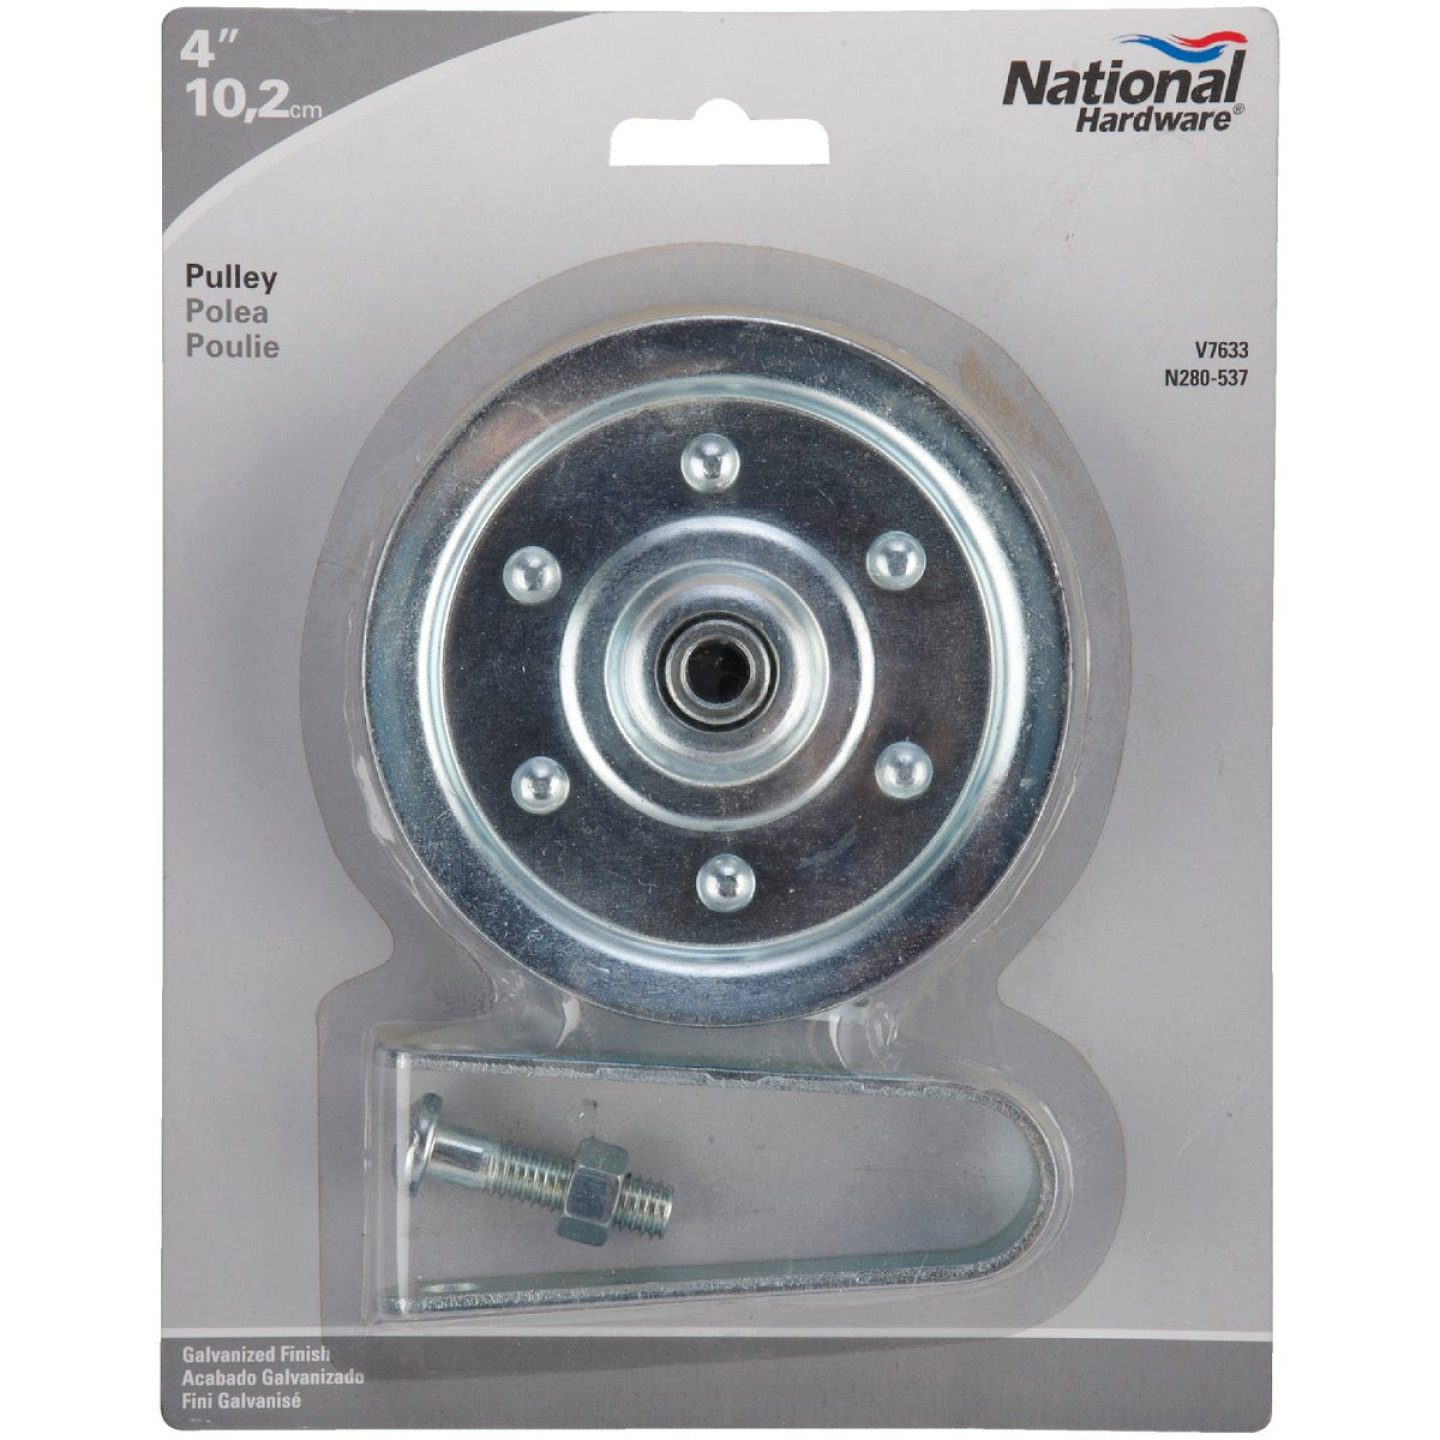 National 4 In. 2-Car Garage Door Pulley Image 2